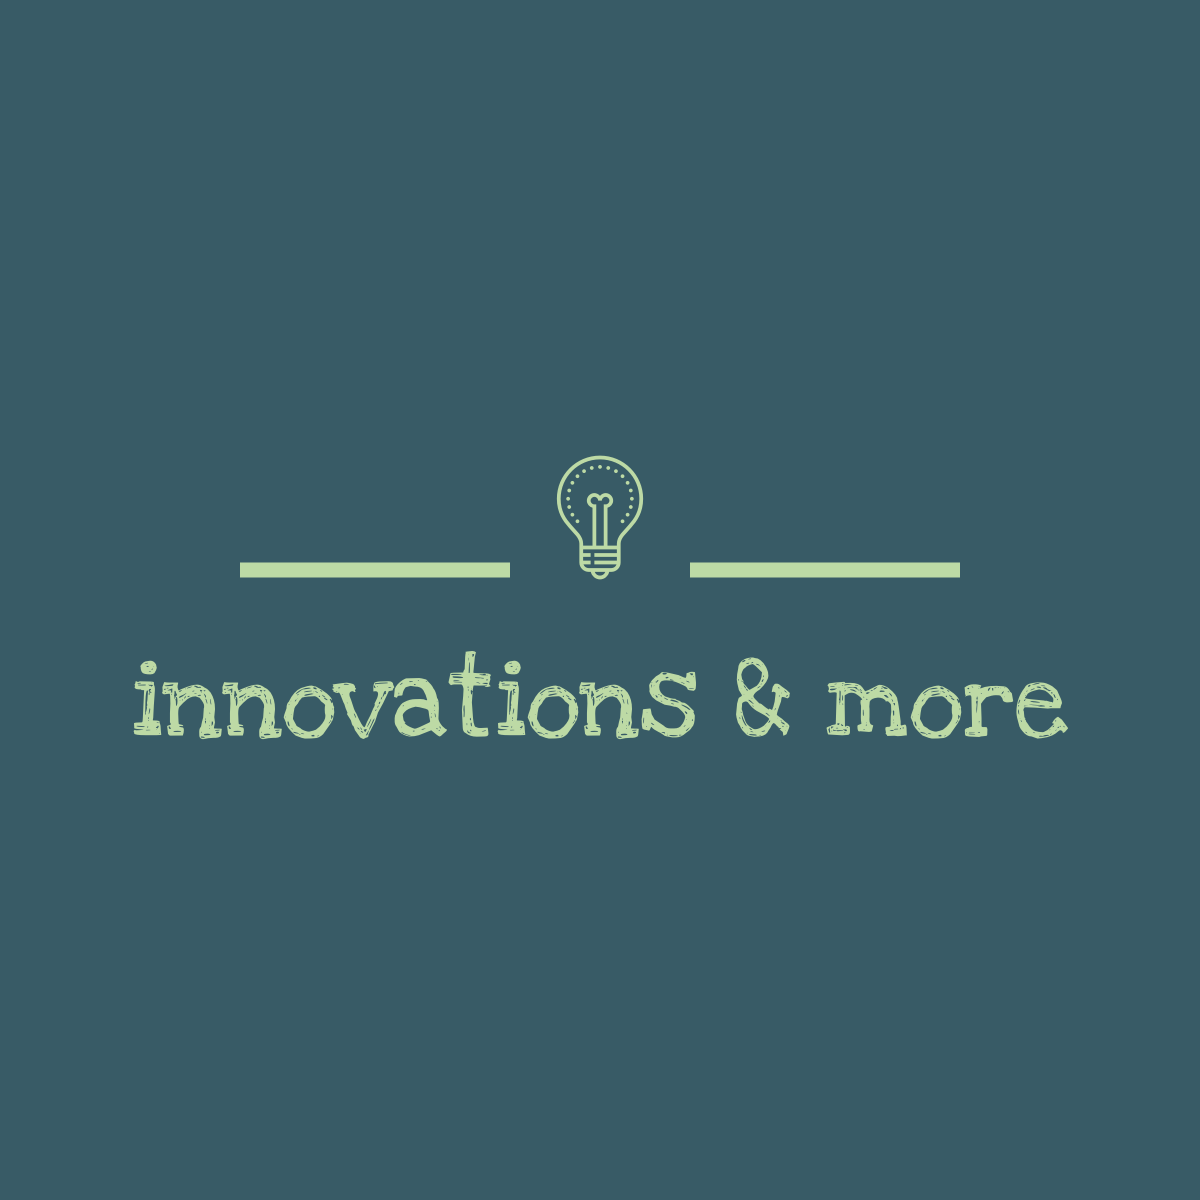 INNOVATIONS AND MORE